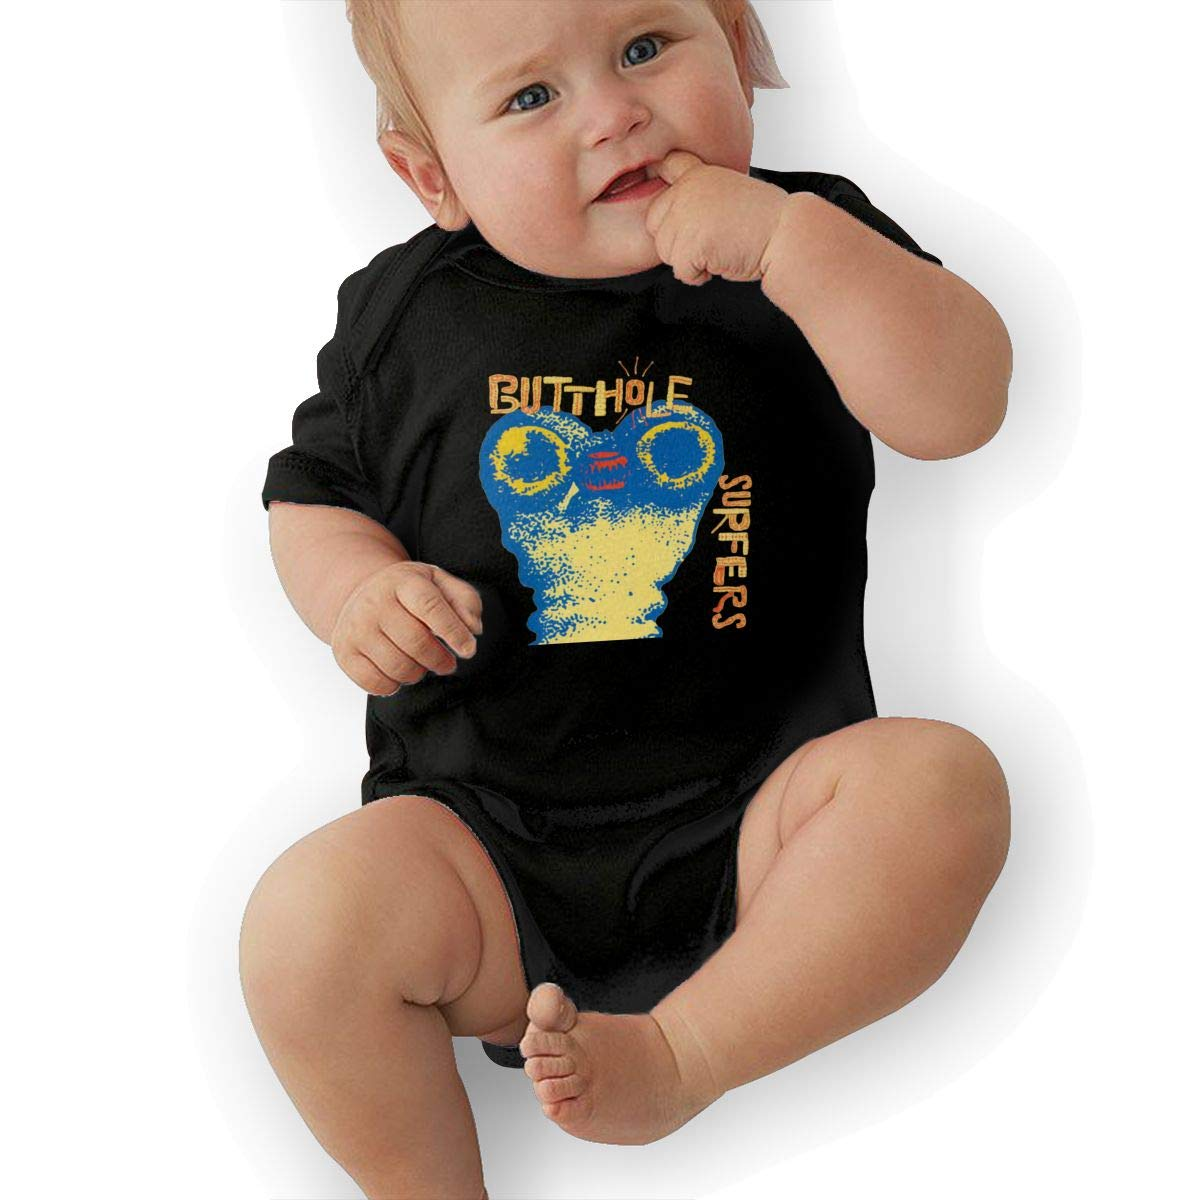 LuckyTagy Butthole Surfers Independent Worm Saloon Unisex Vintage Boys /& Girls Romper Baby BoyJumpsuit Black